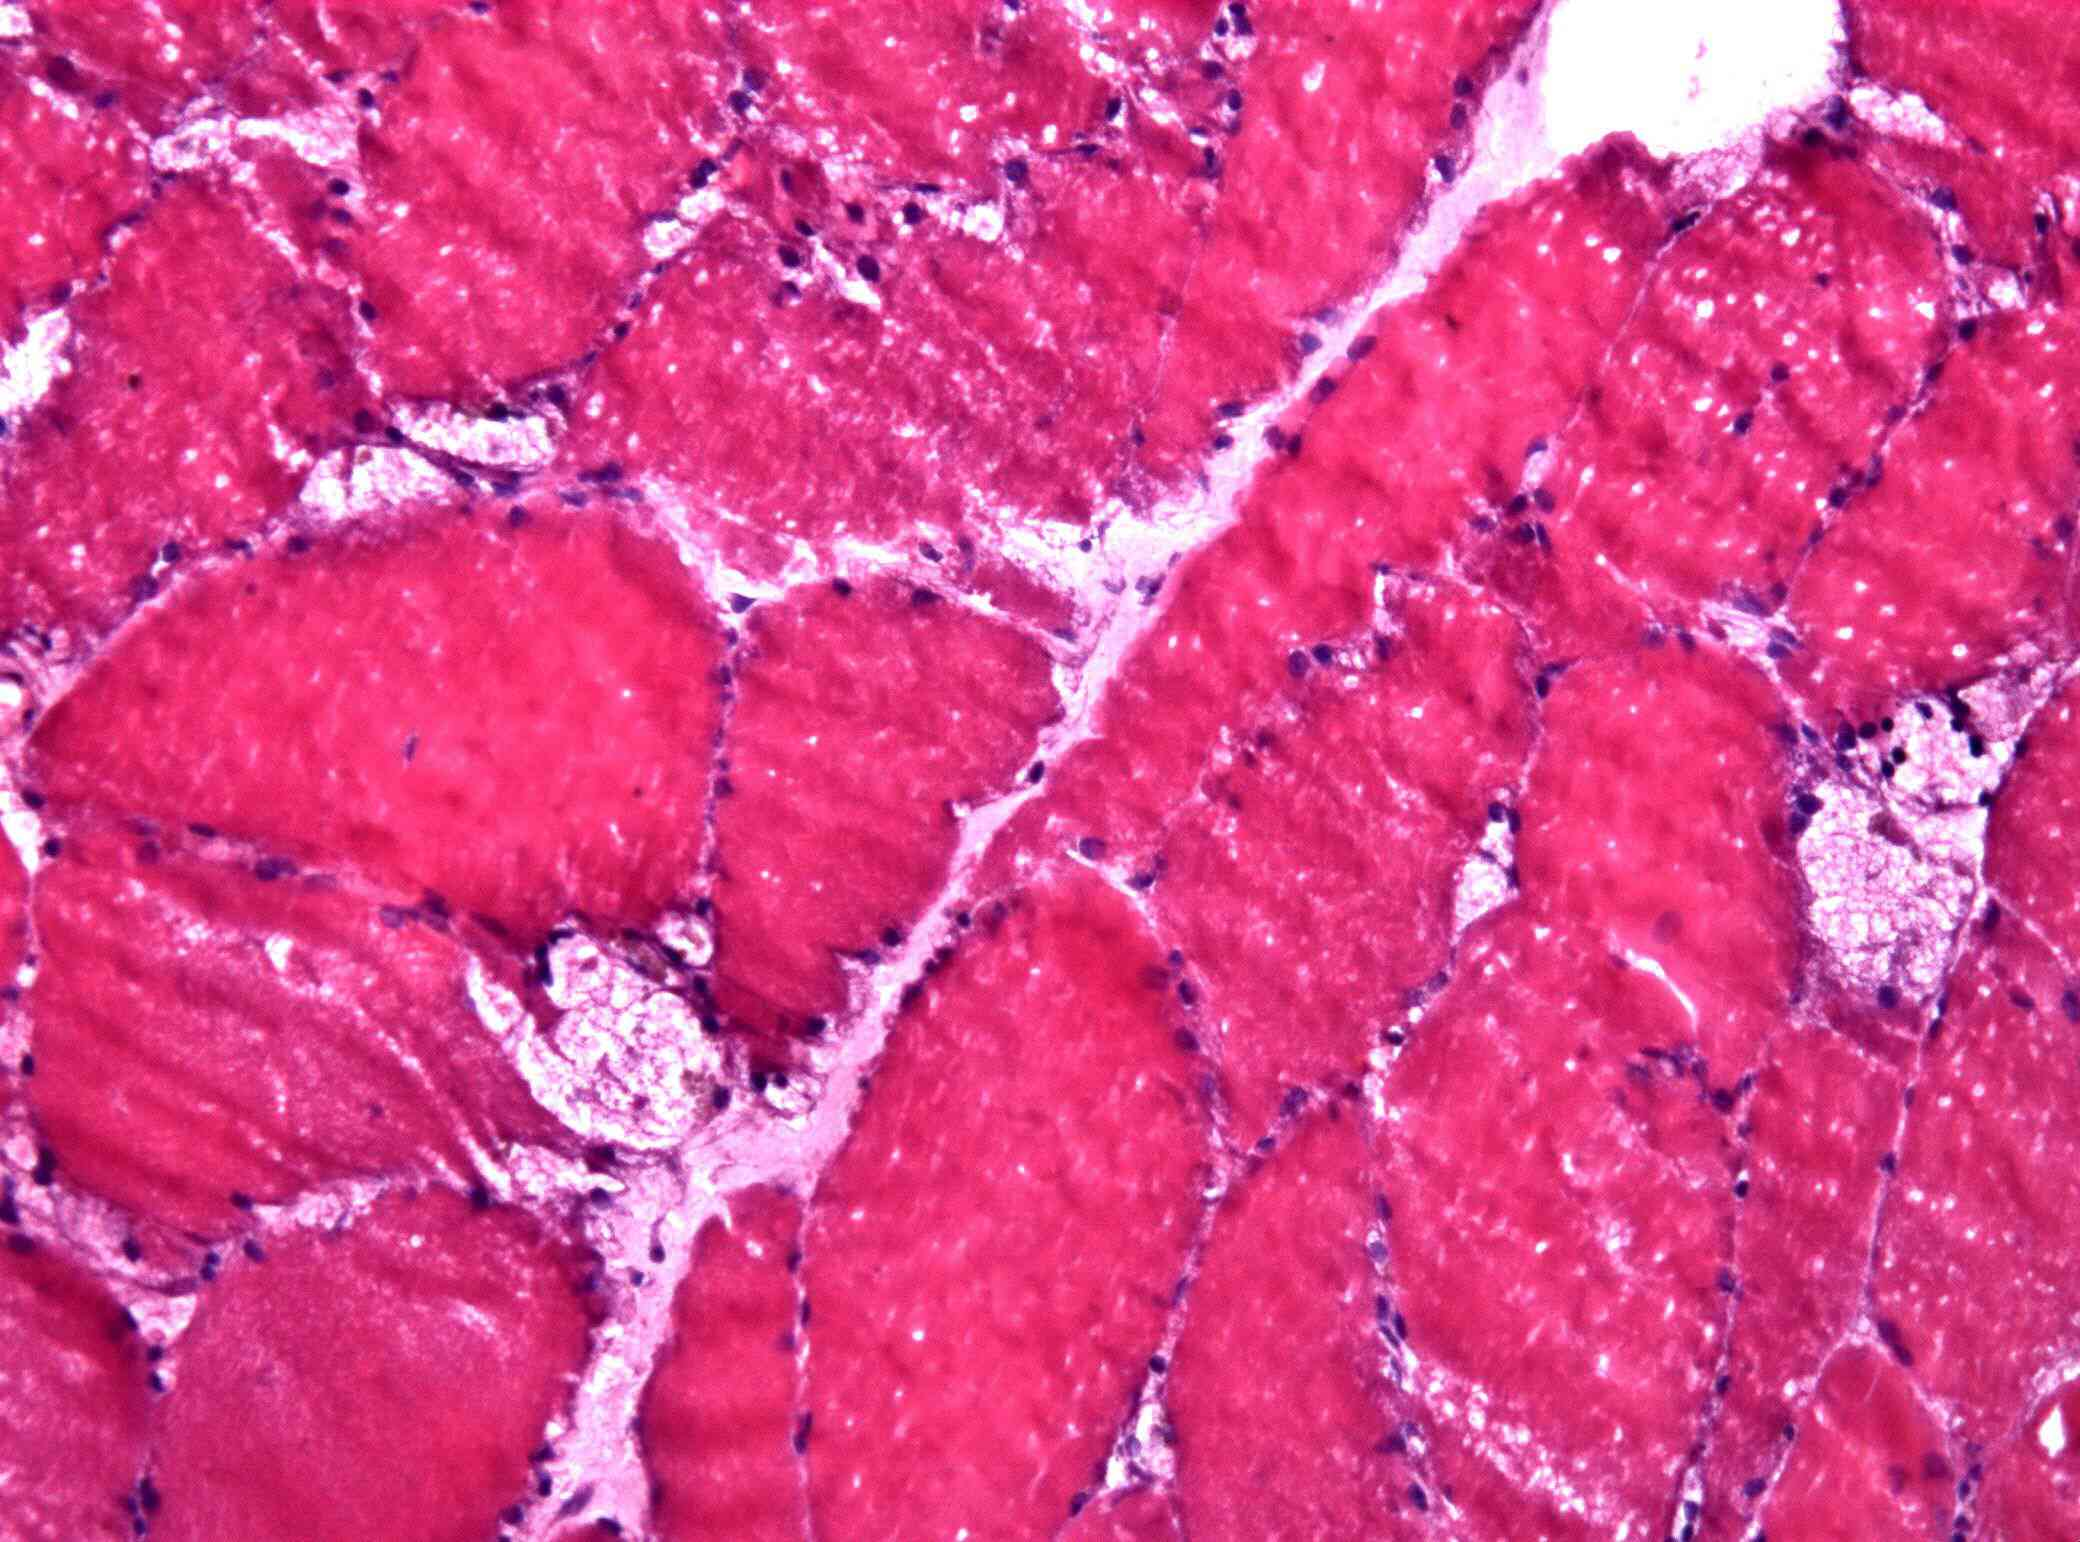 Muscle biopsy showing large vacuoles in a case of pompes disease